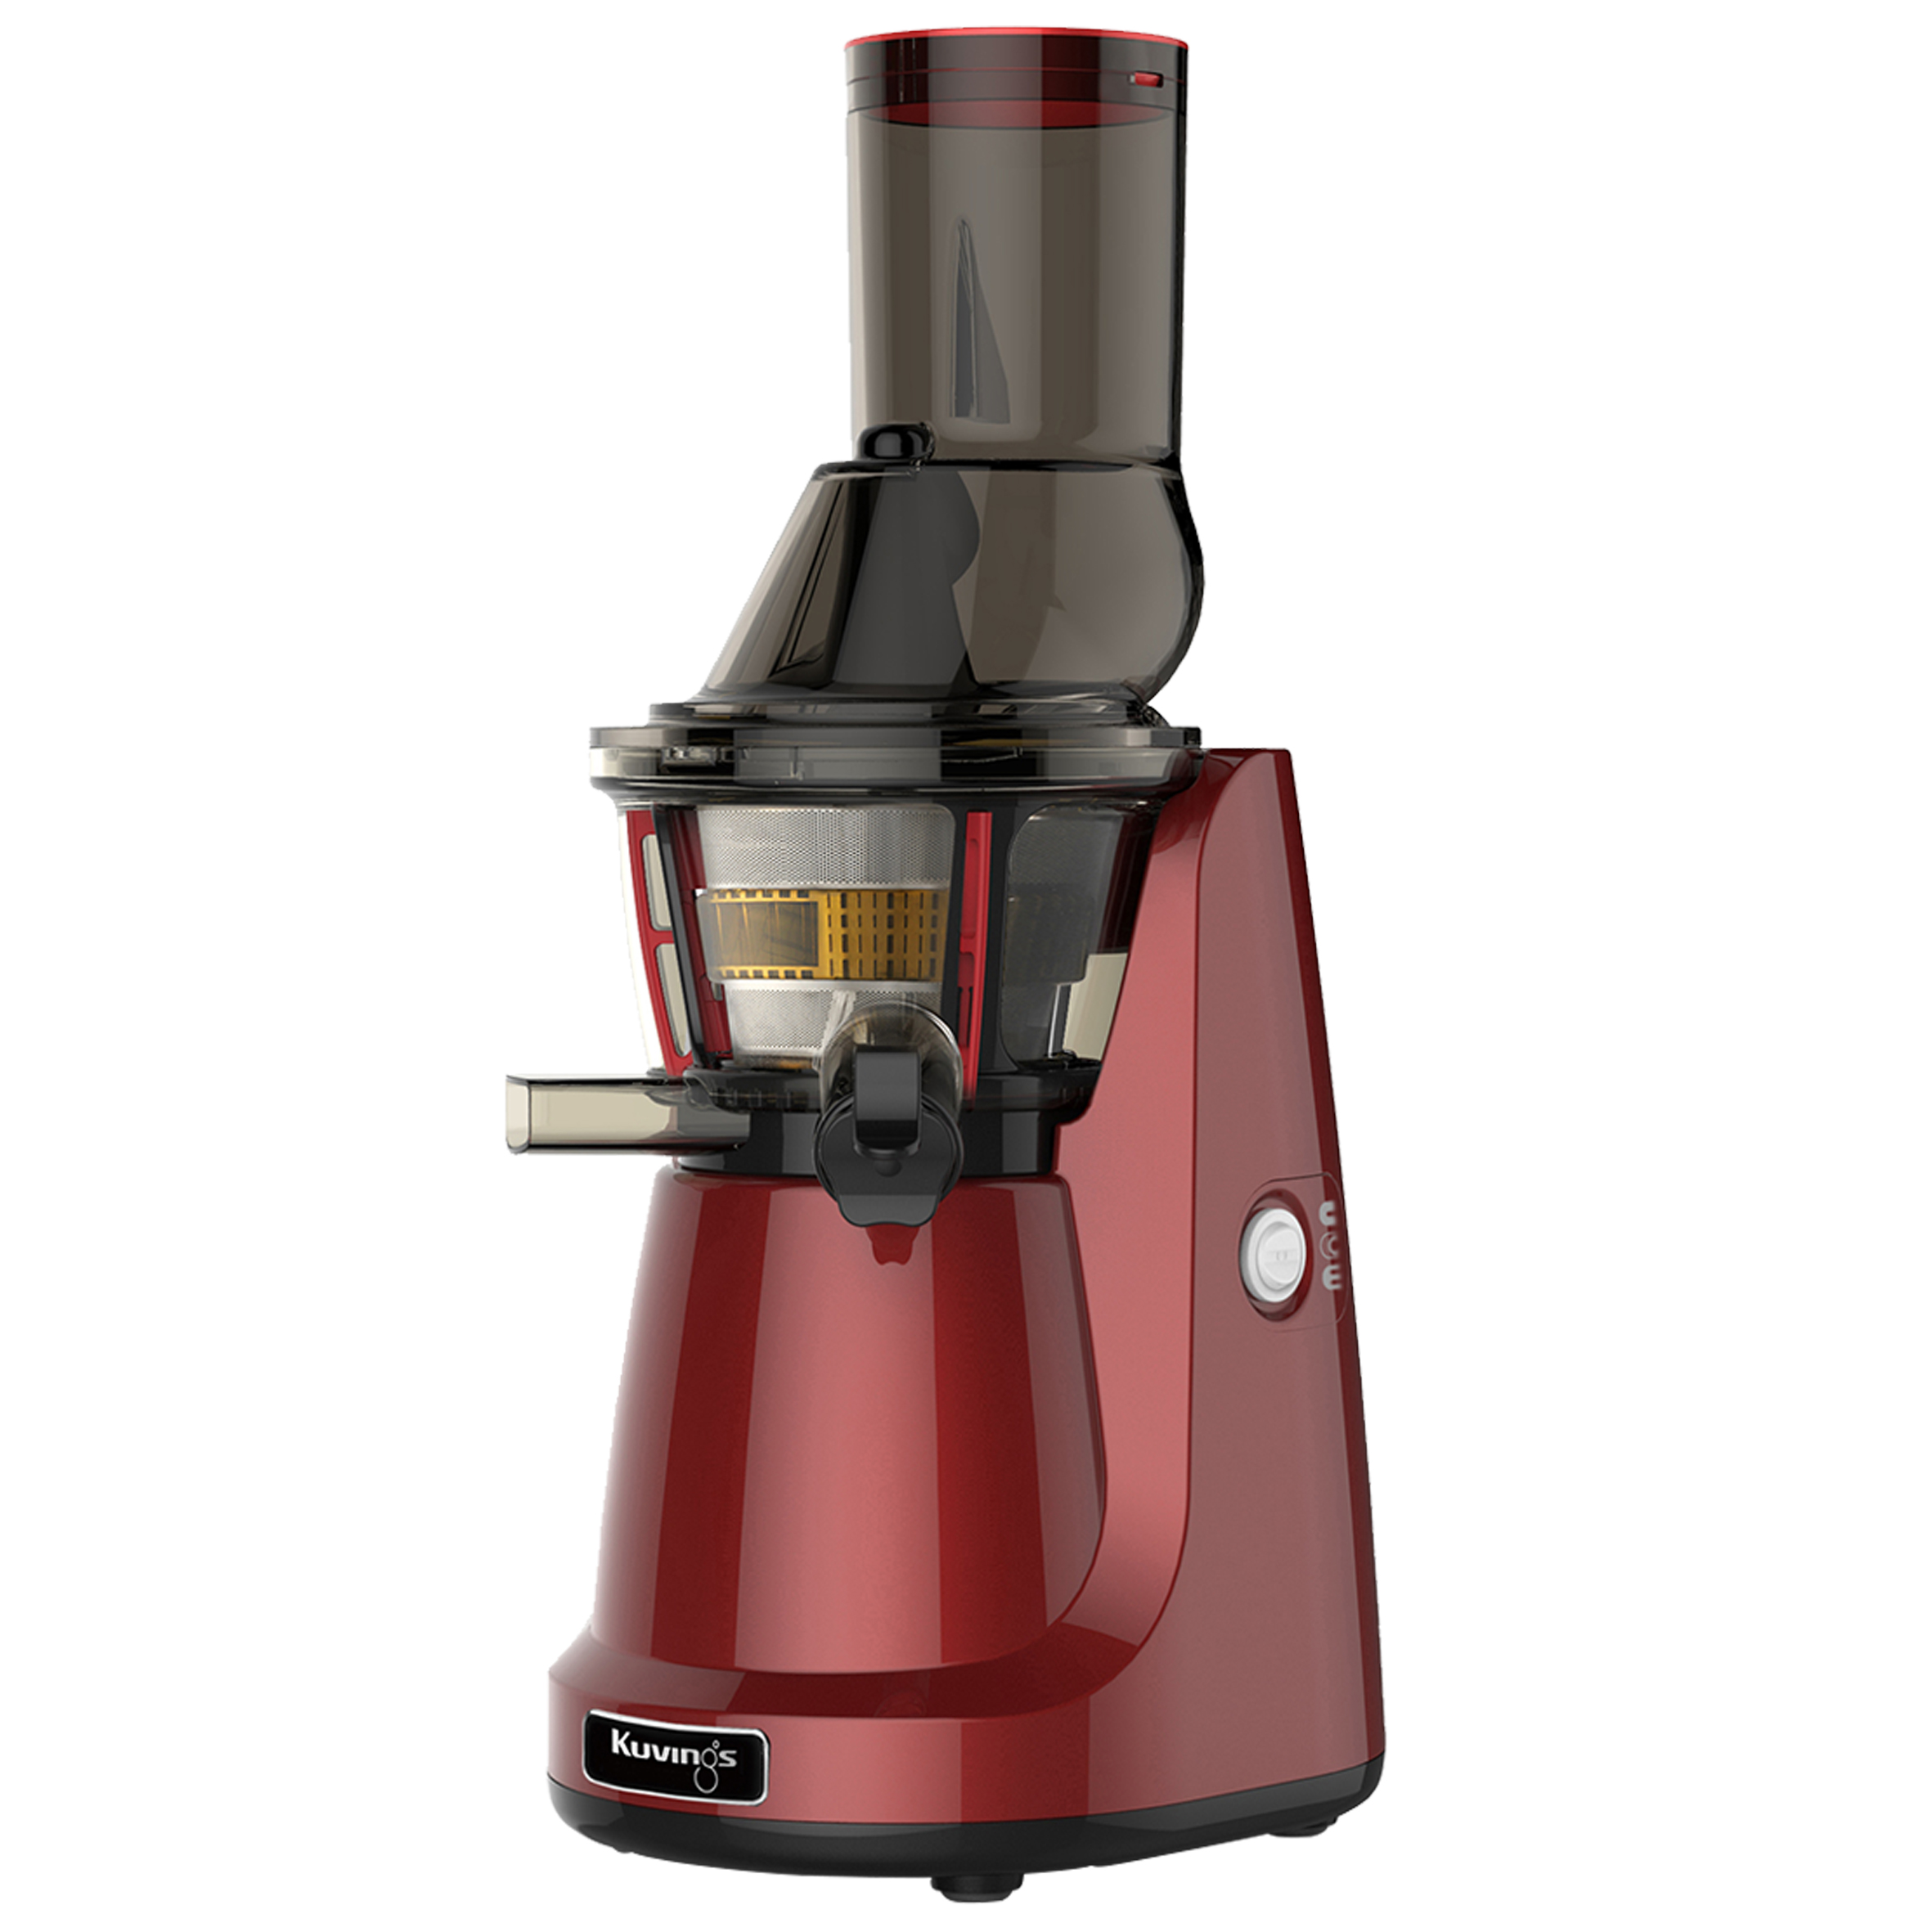 Kuvings Whole Juicer Reviews : Kuvings Whole Slow Juicer B3000 Reviews - ProductReview.com.au